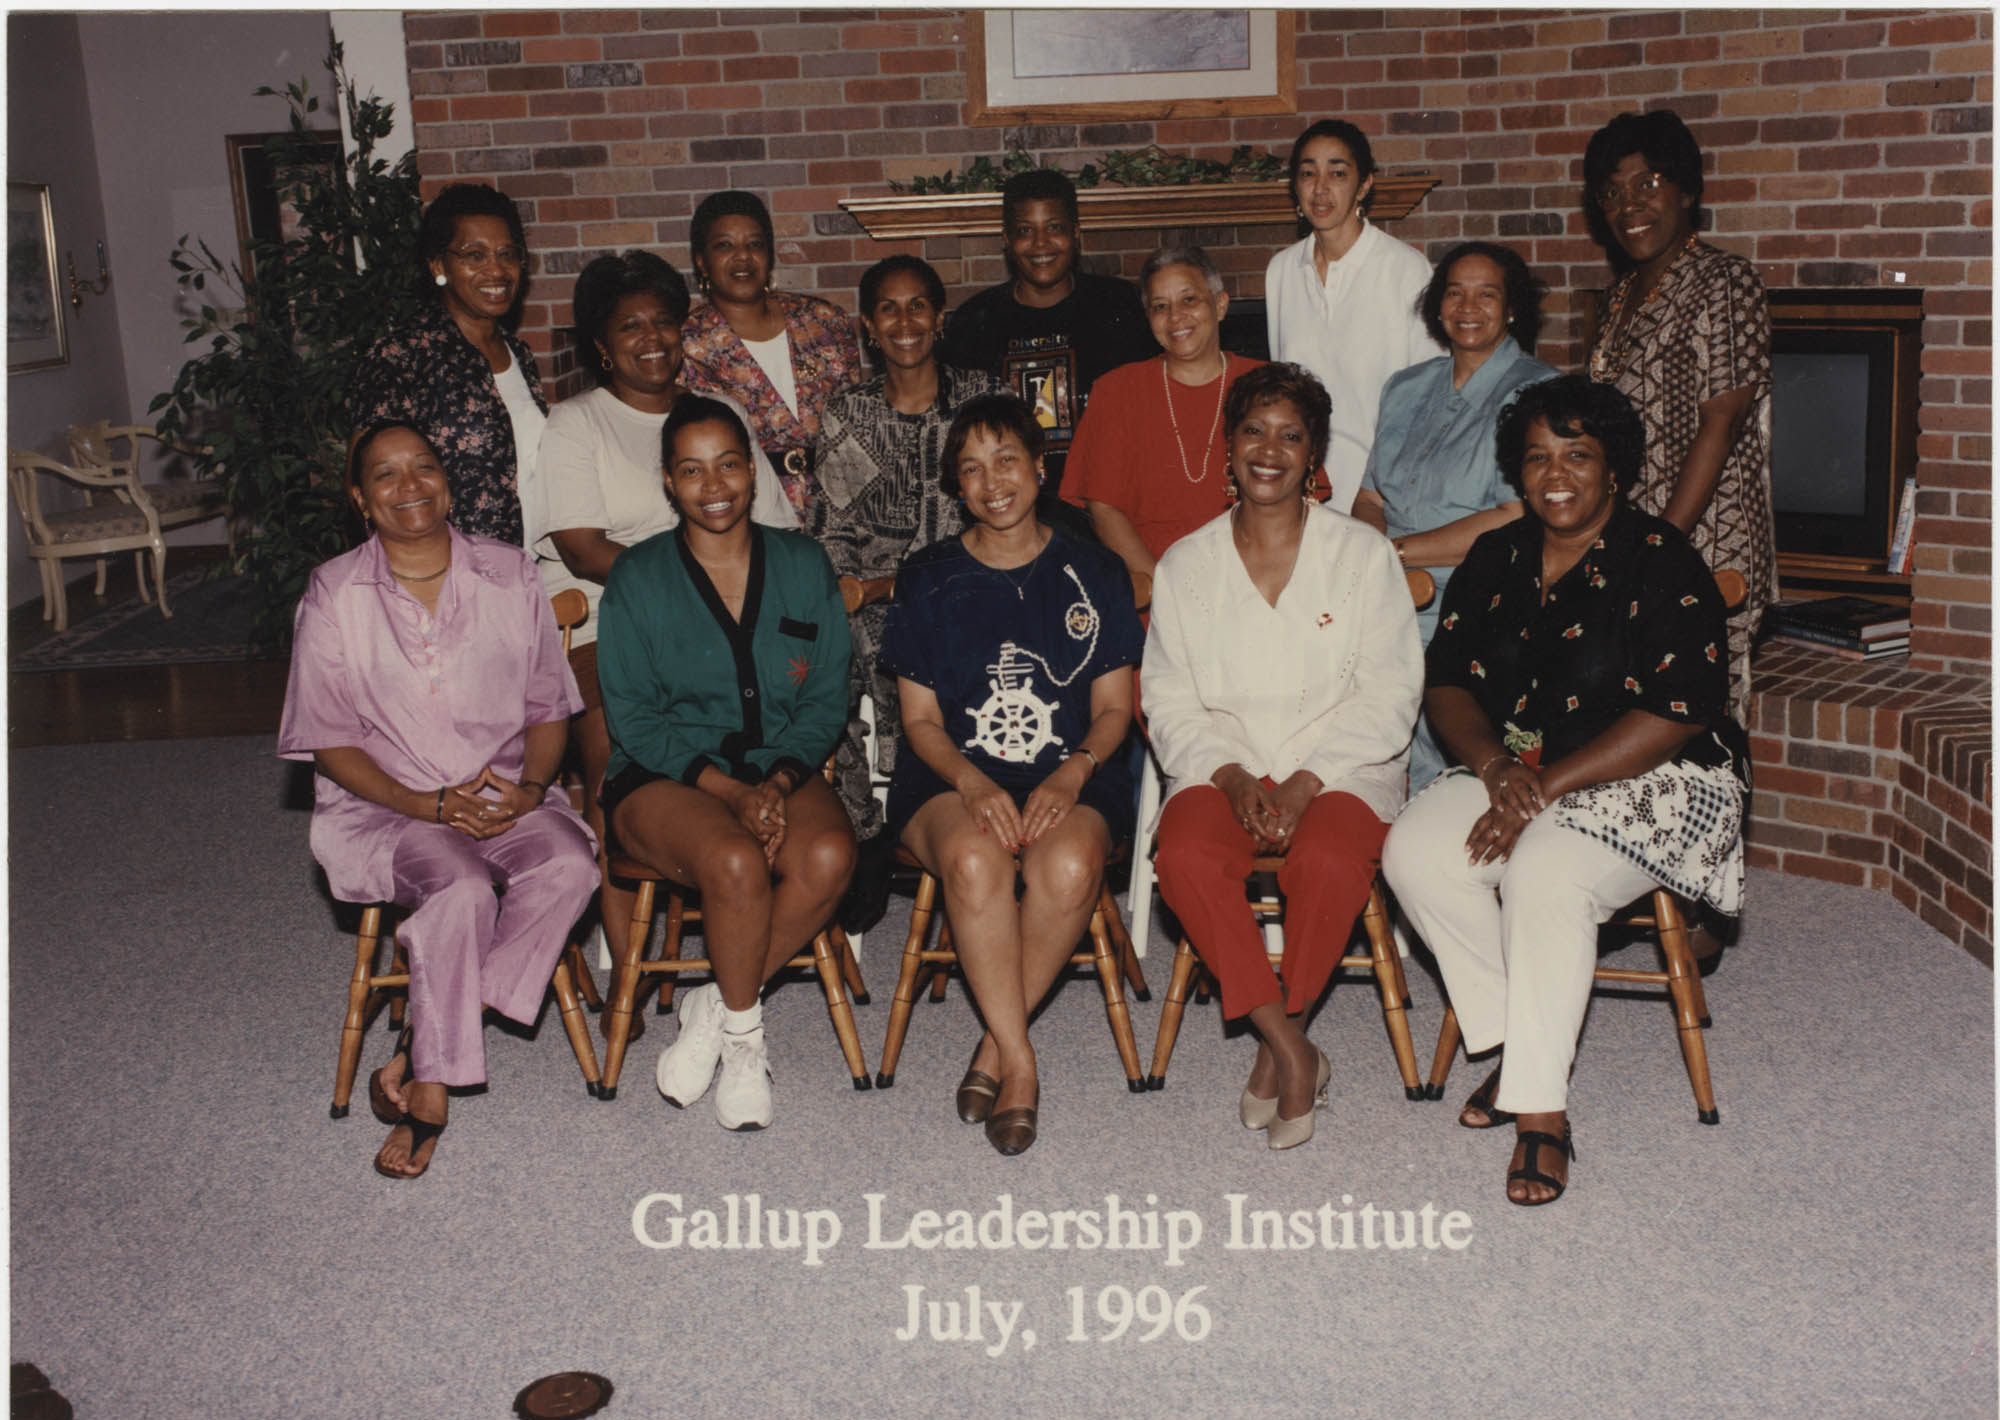 Photograph of the Gallup Leadership Institute, July 1996